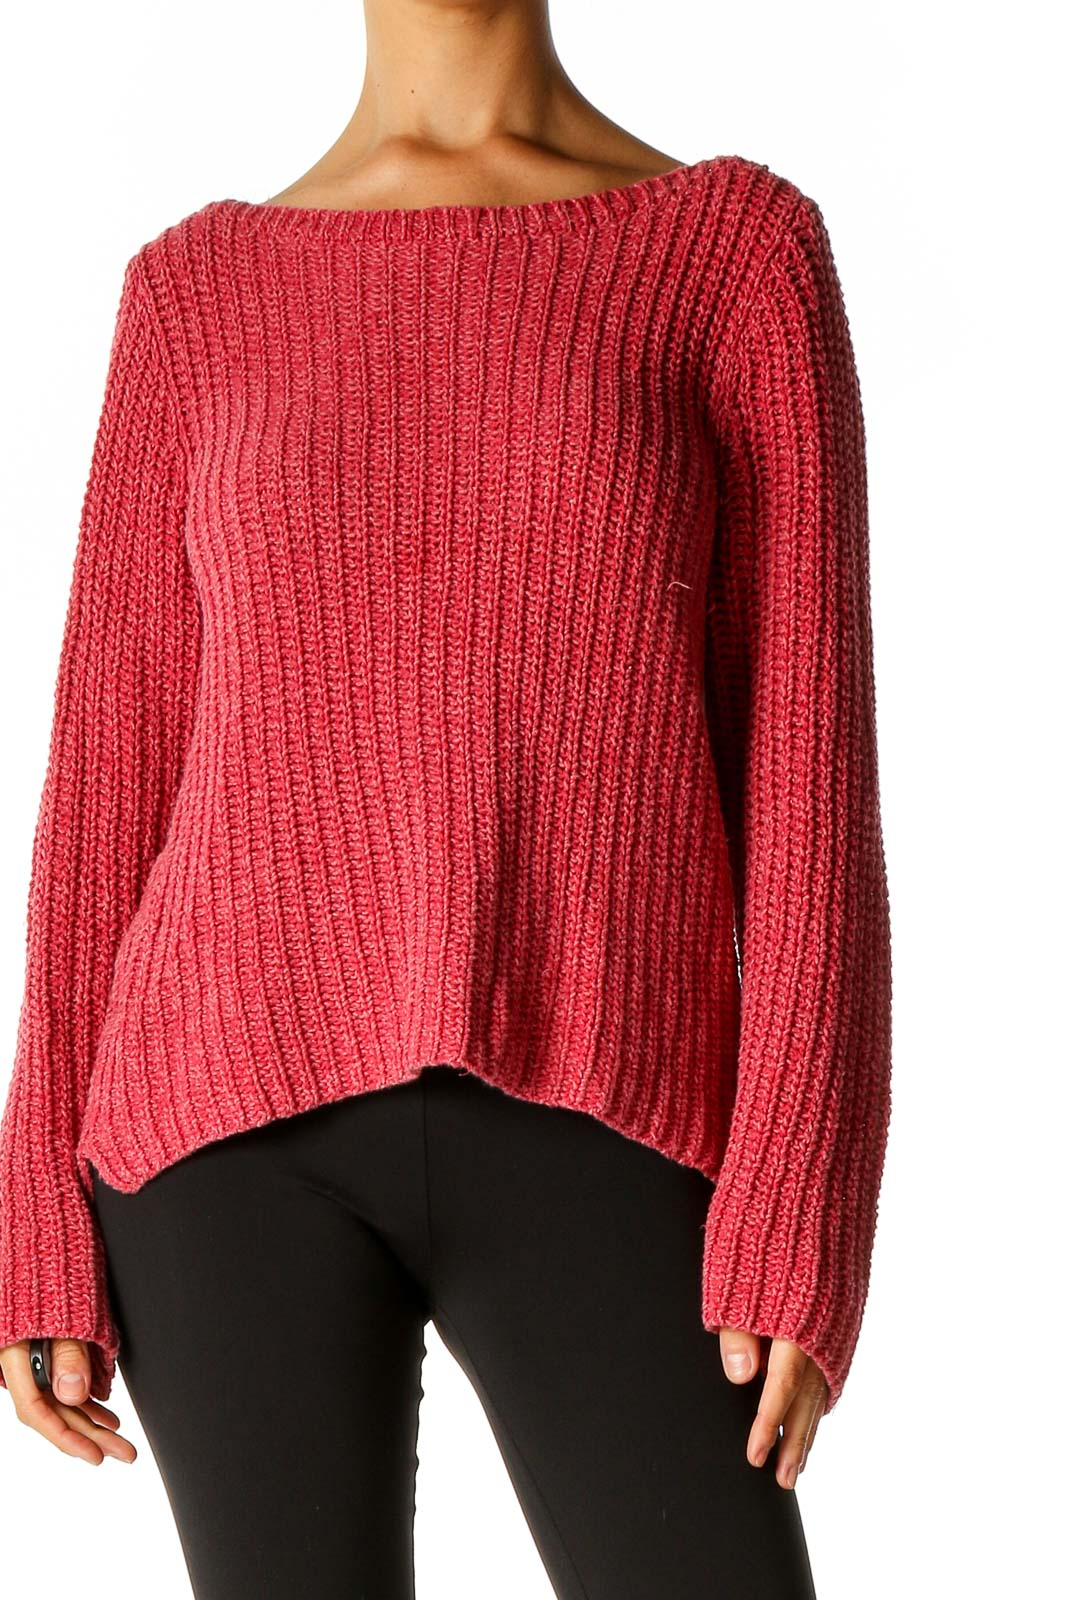 Red Retro Sweater Front